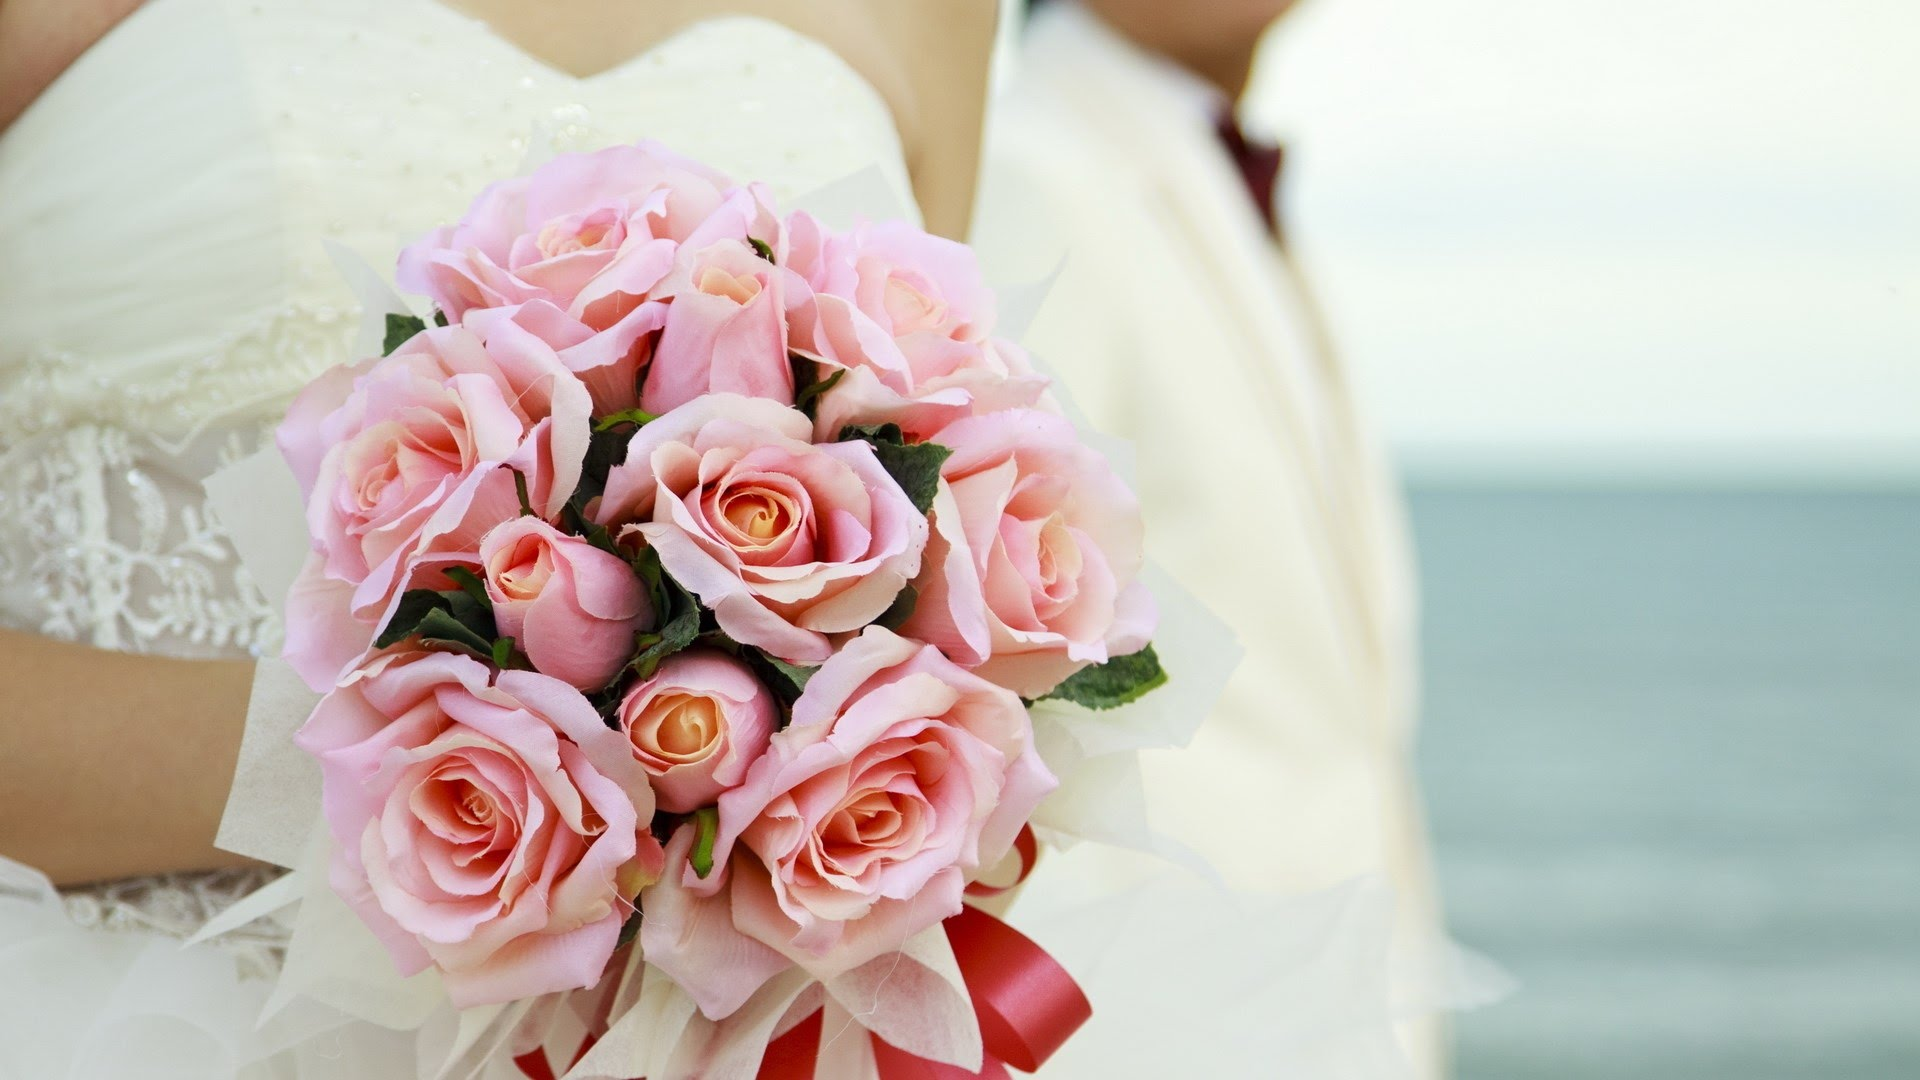 Some Tips To Buy Flowers For Your Wedding Buying Flowers